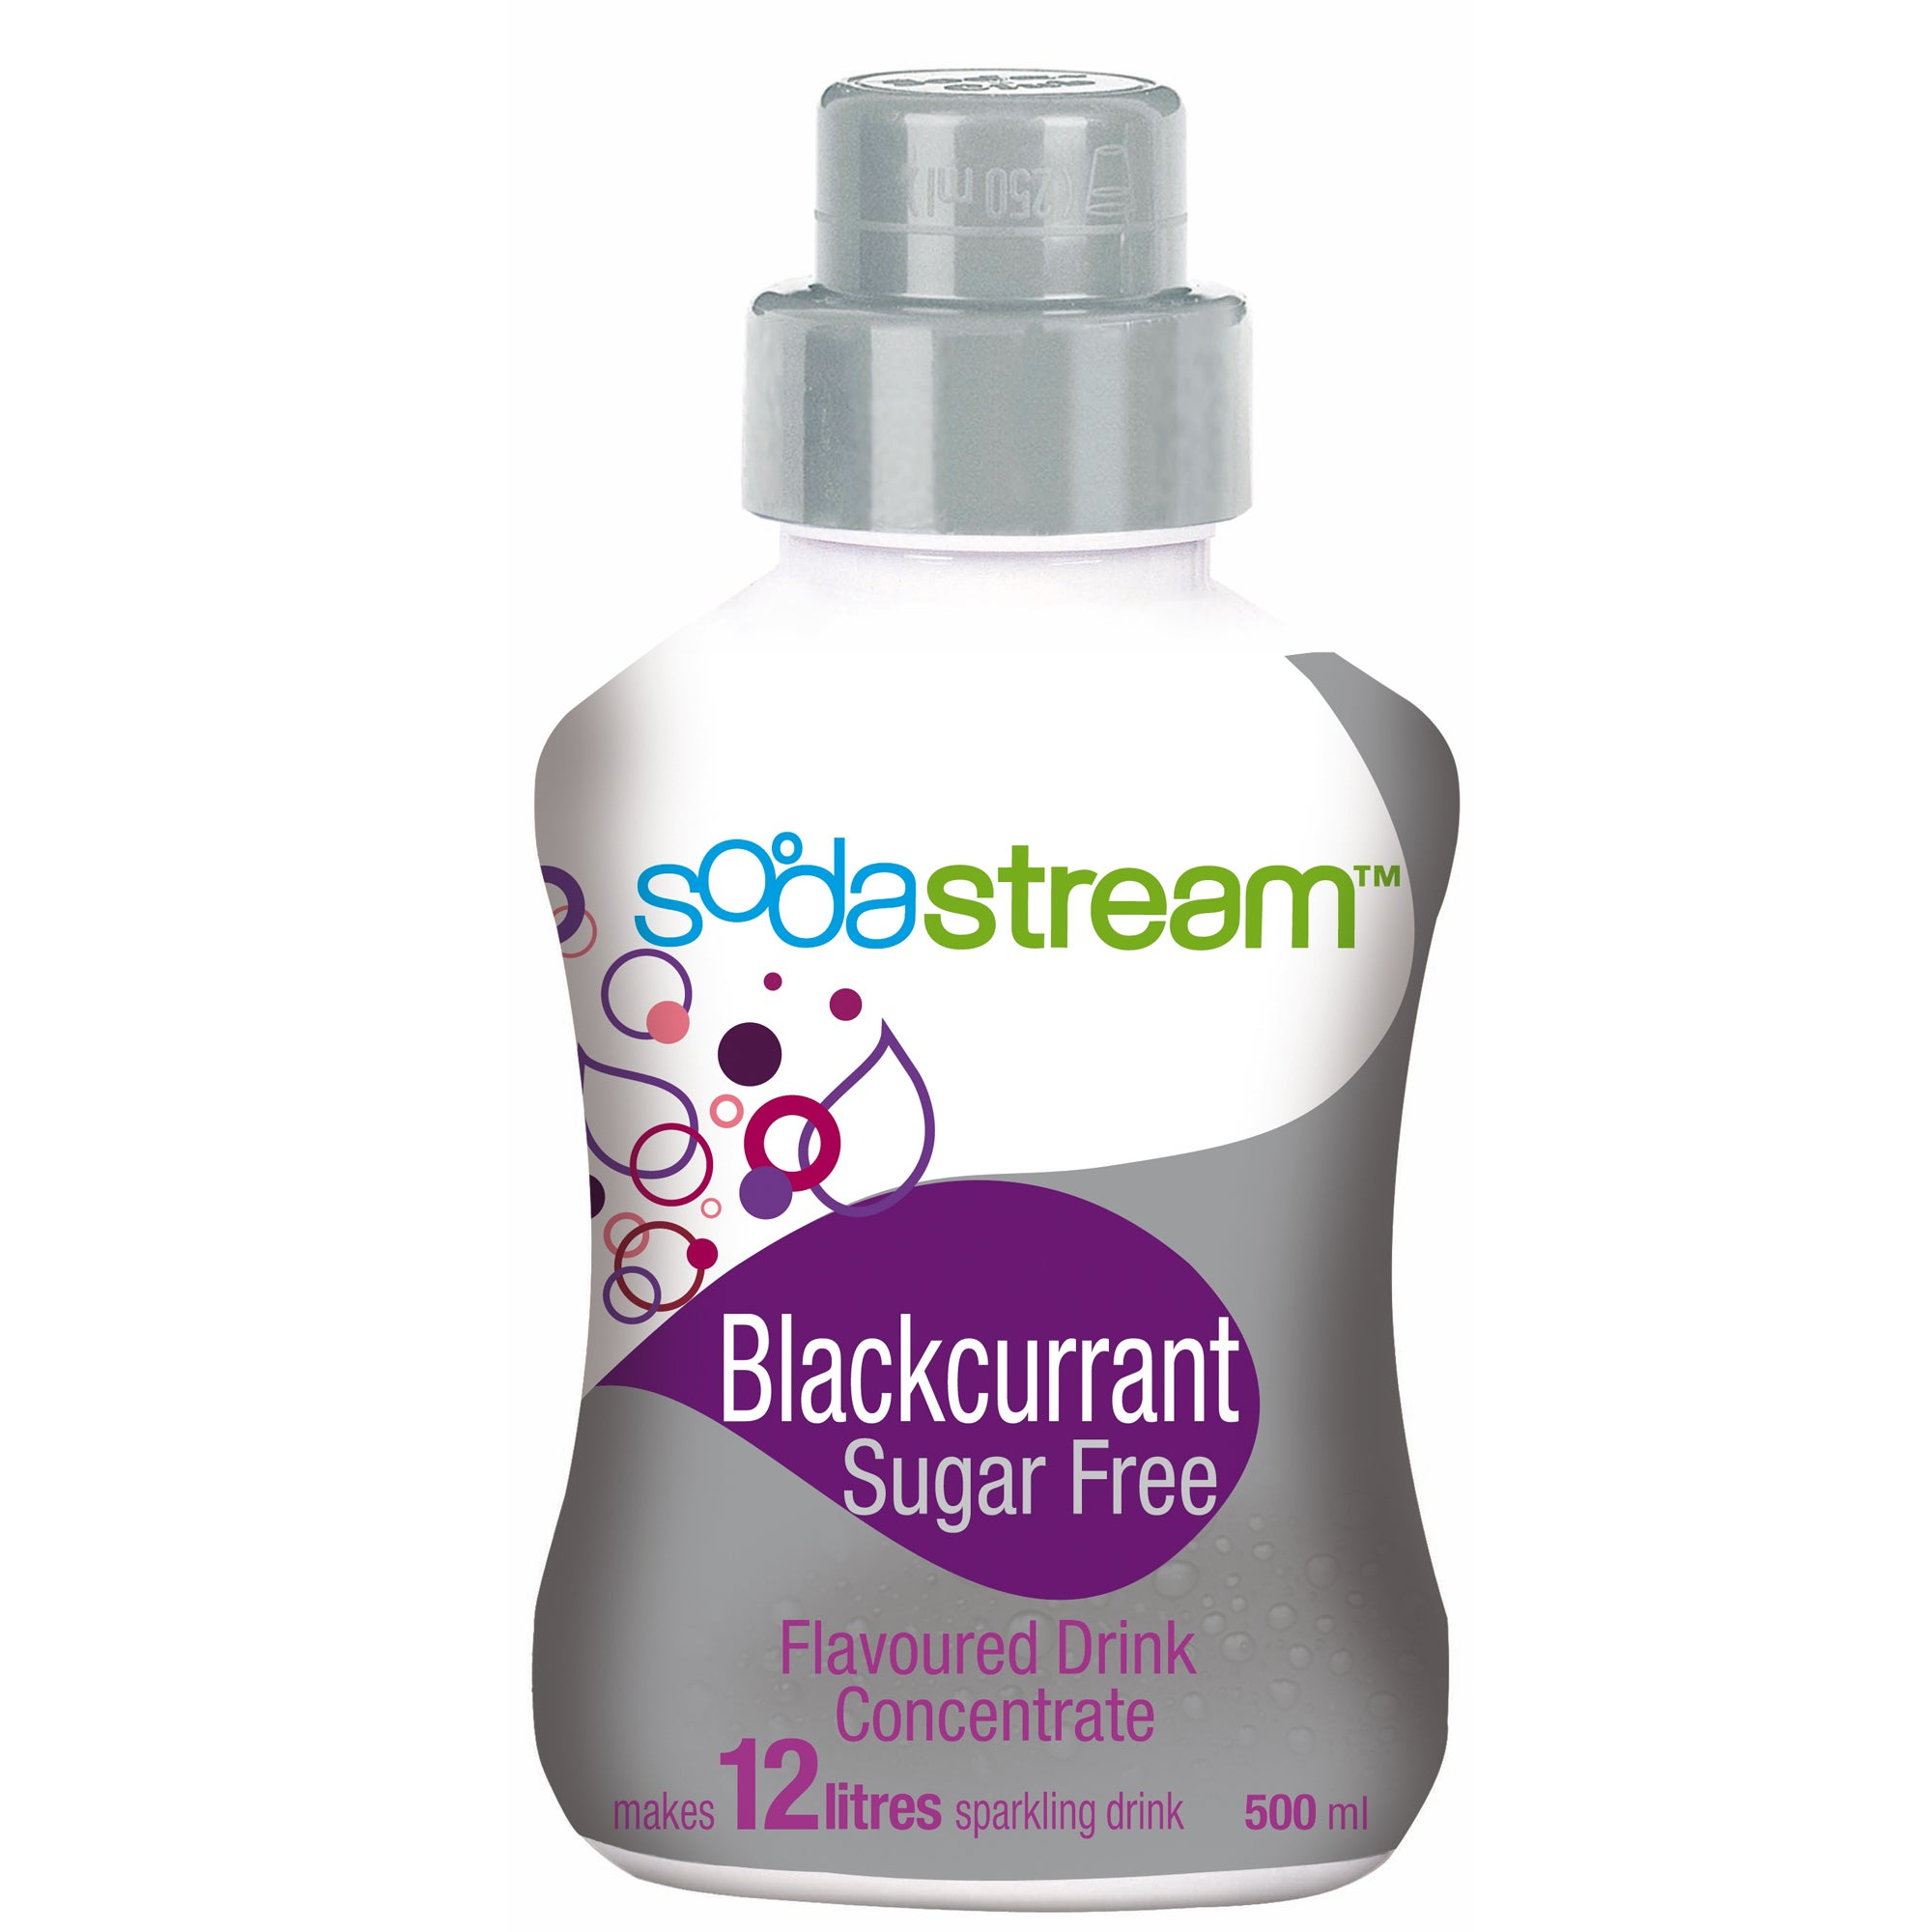 SodaStream Sugar Free Blackcurrant Refill Mixer